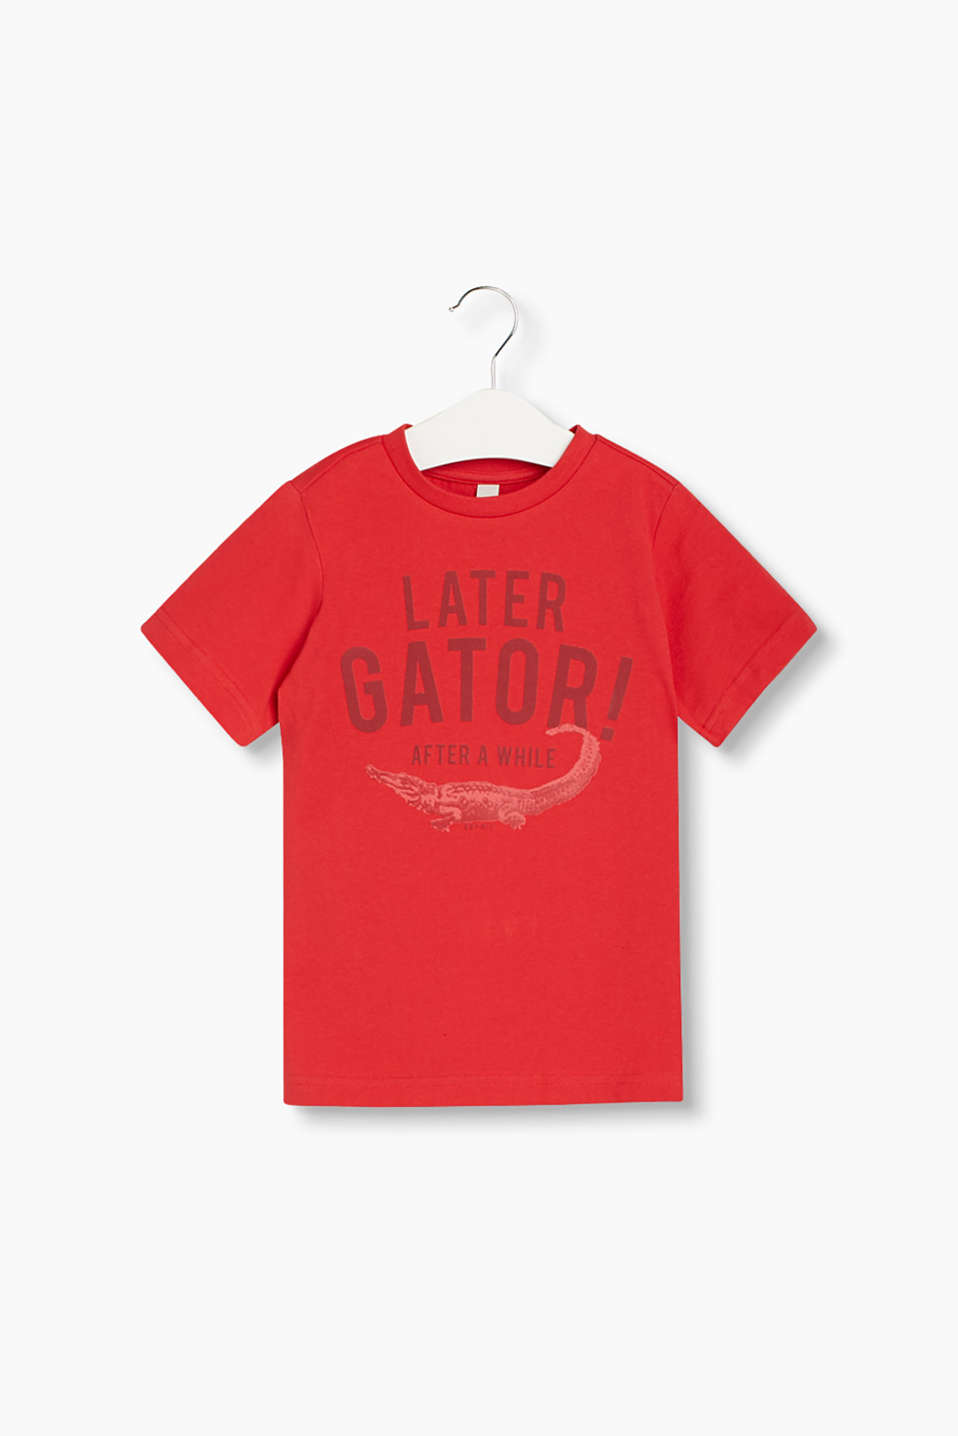 SEE YOU LATER ALLIGATOR - soft, cotton-jersey T-shirt